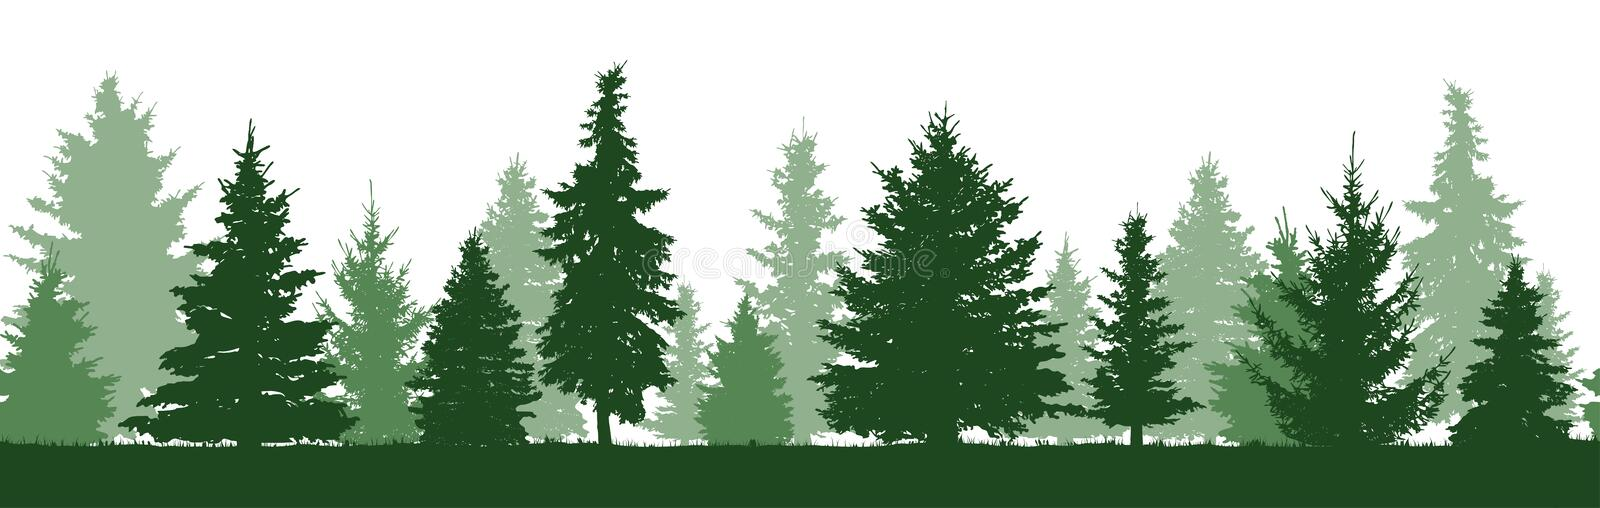 Seamless pattern of forest fir trees silhouette. royalty free illustration